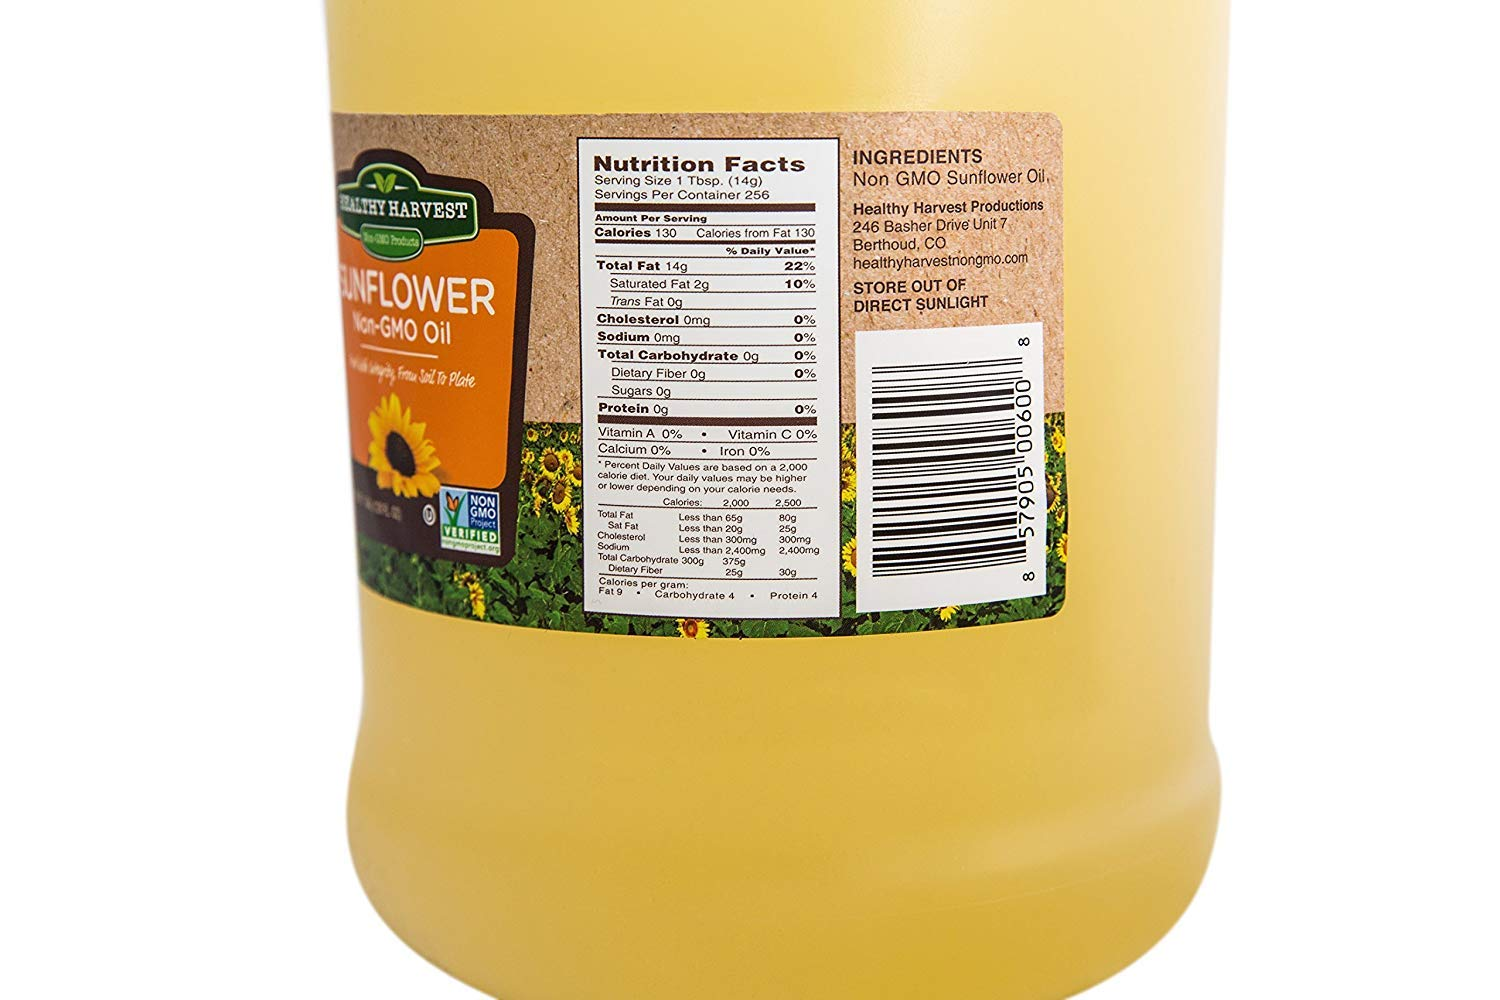 Healthy Harvest Non-GMO Sunflower Oil - Healthy Cooking Oil for Cooking, Baking, Frying & More - Naturally Processed to Retain Natural Antioxidants {One Gallon} by Healthy Harvest Productions (Image #5)